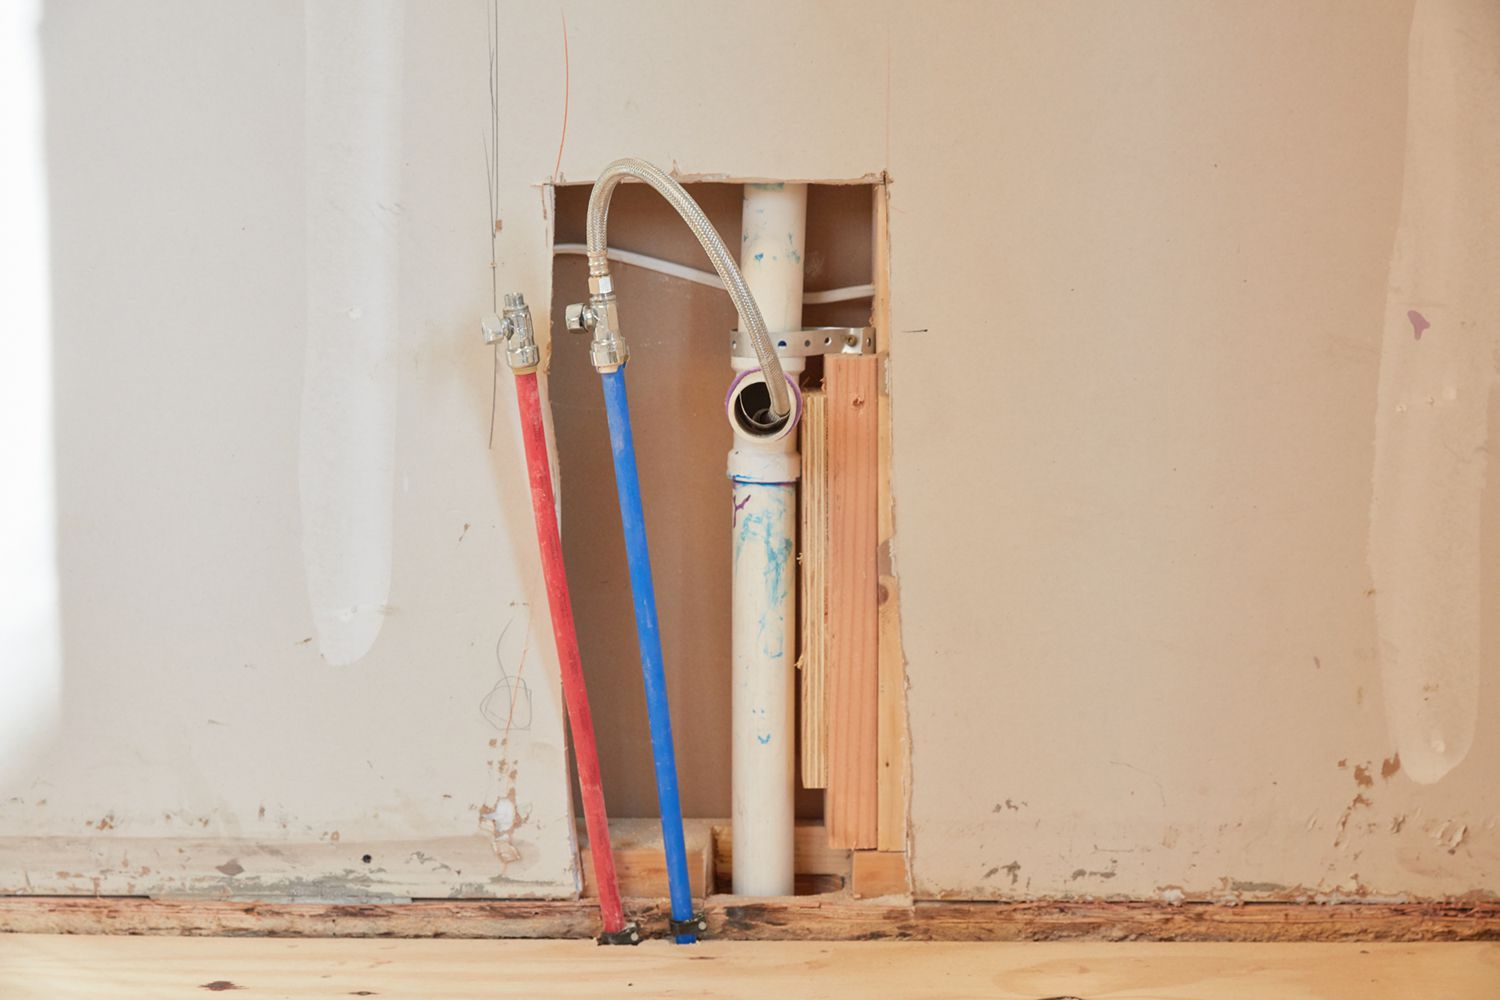 Exposed wall with plumbing pipe and blue and red wires